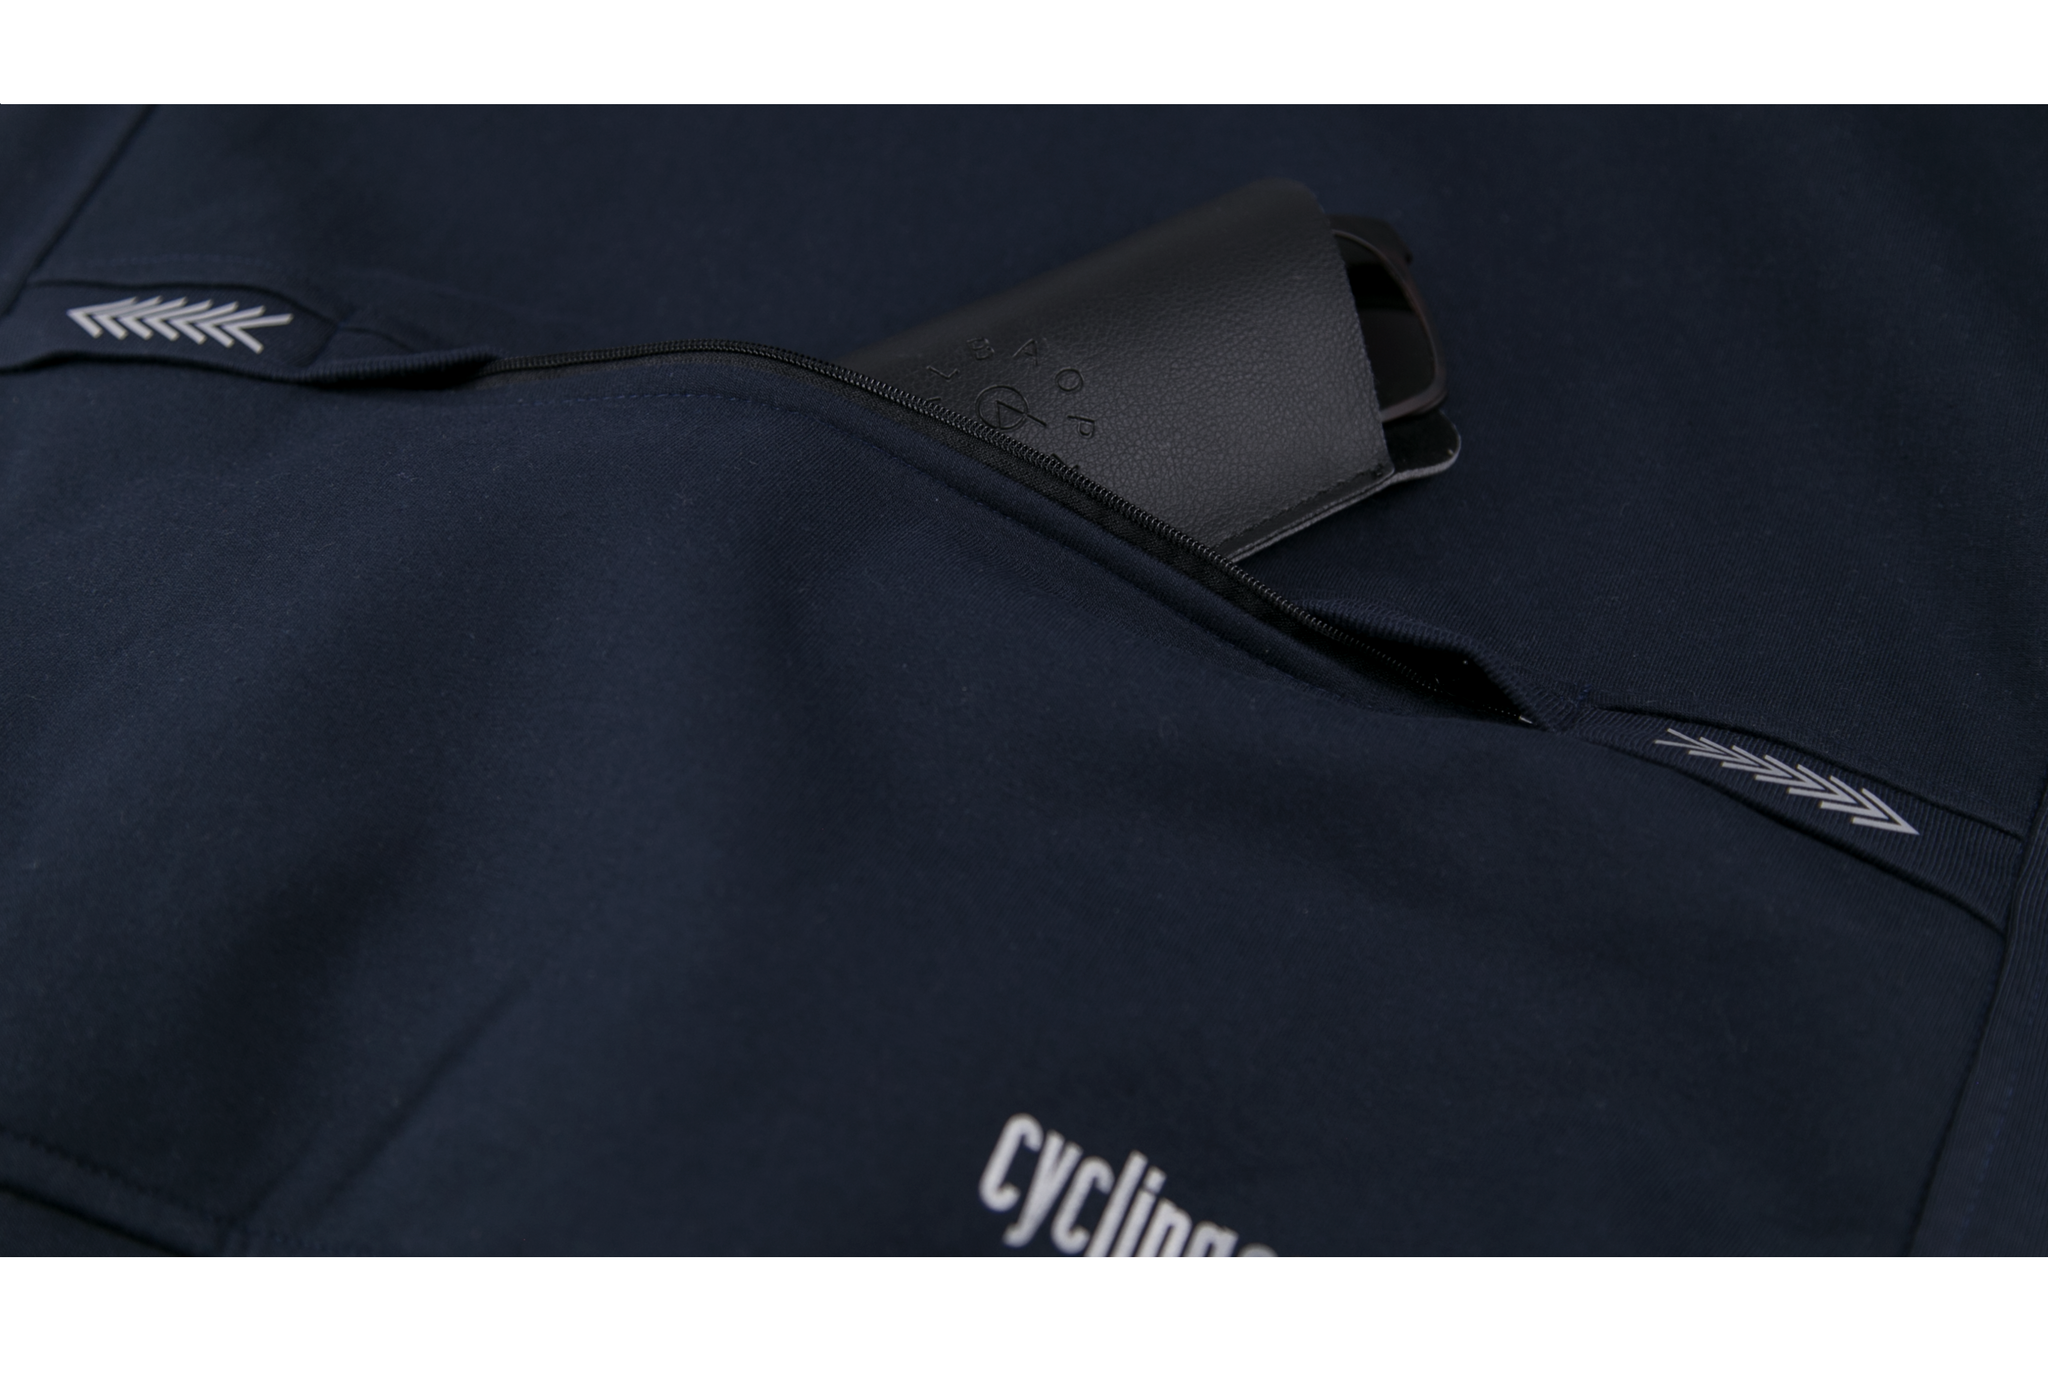 Cycling Sweatshirt (Reflective) - Navy Blue